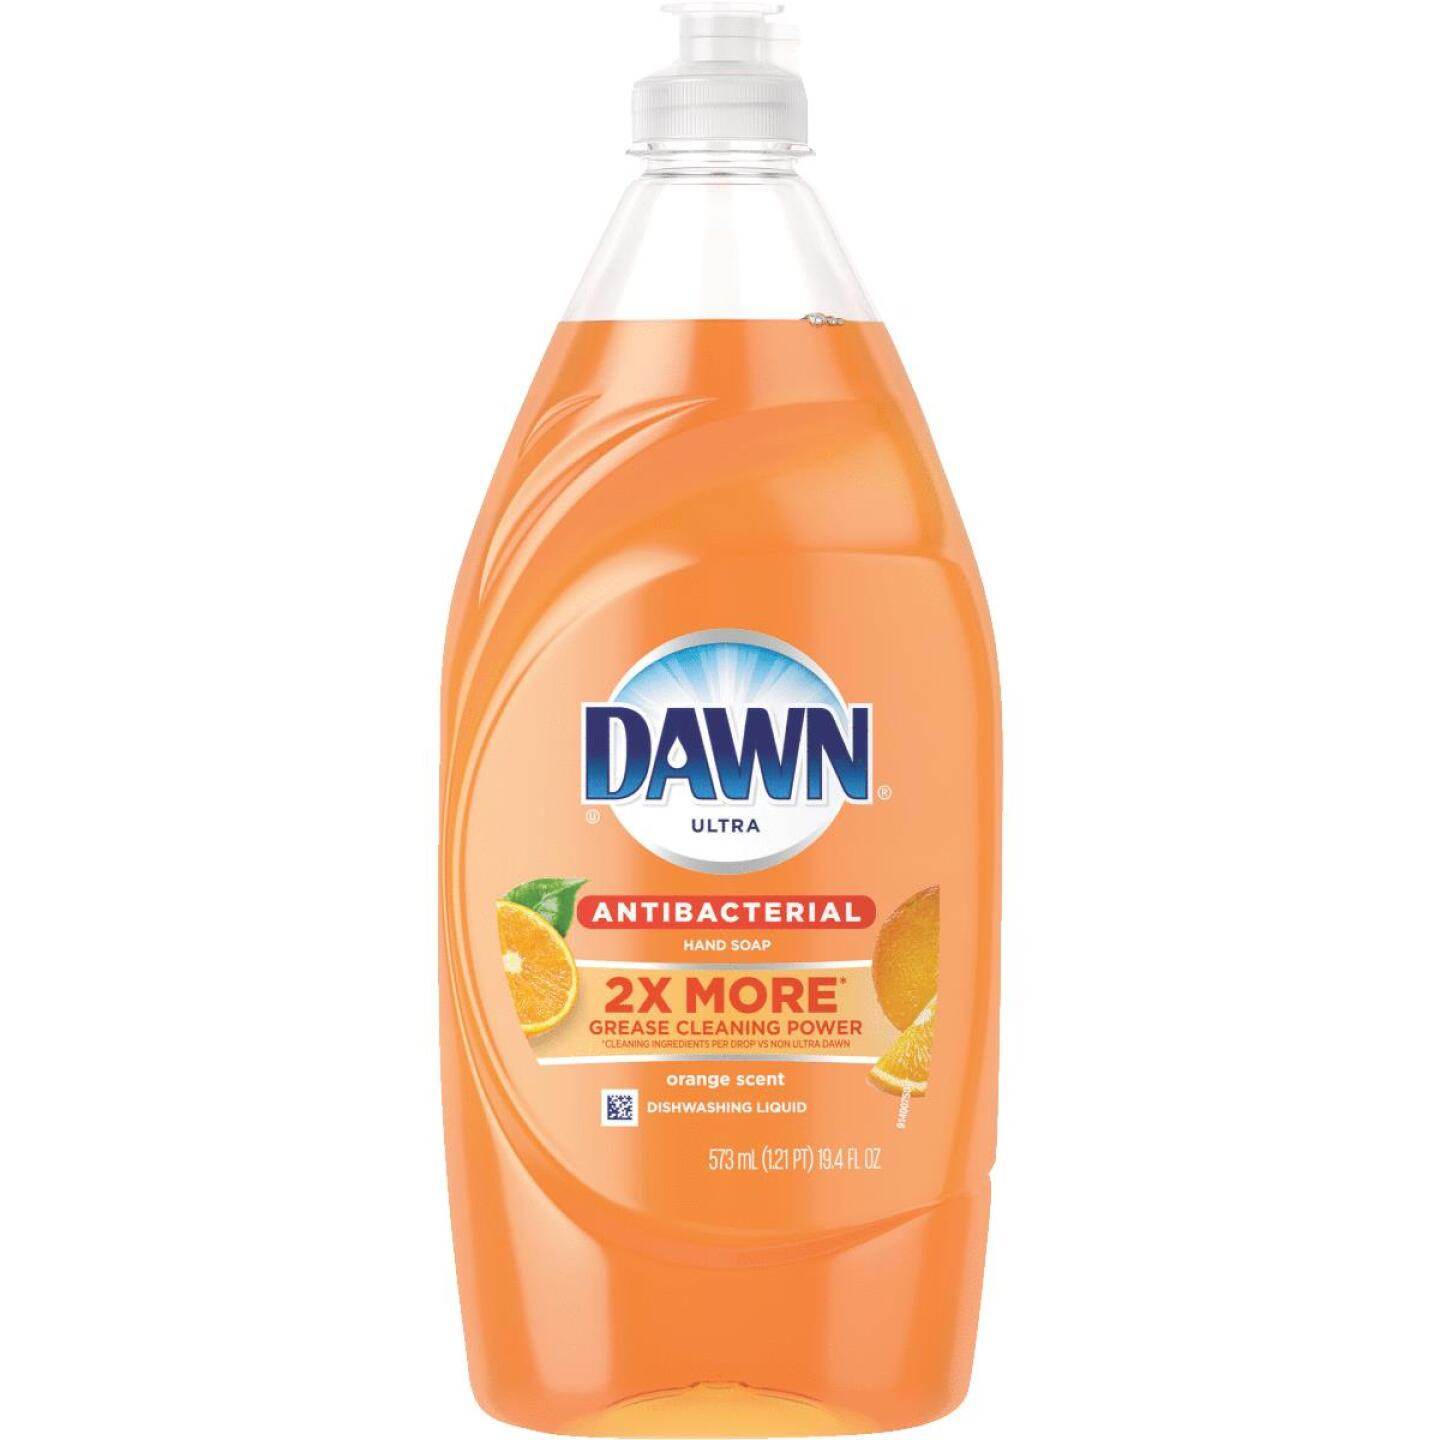 Dawn Ultra 19.4 Oz. Orange Scent Antibacterial Dish Soap Image 1